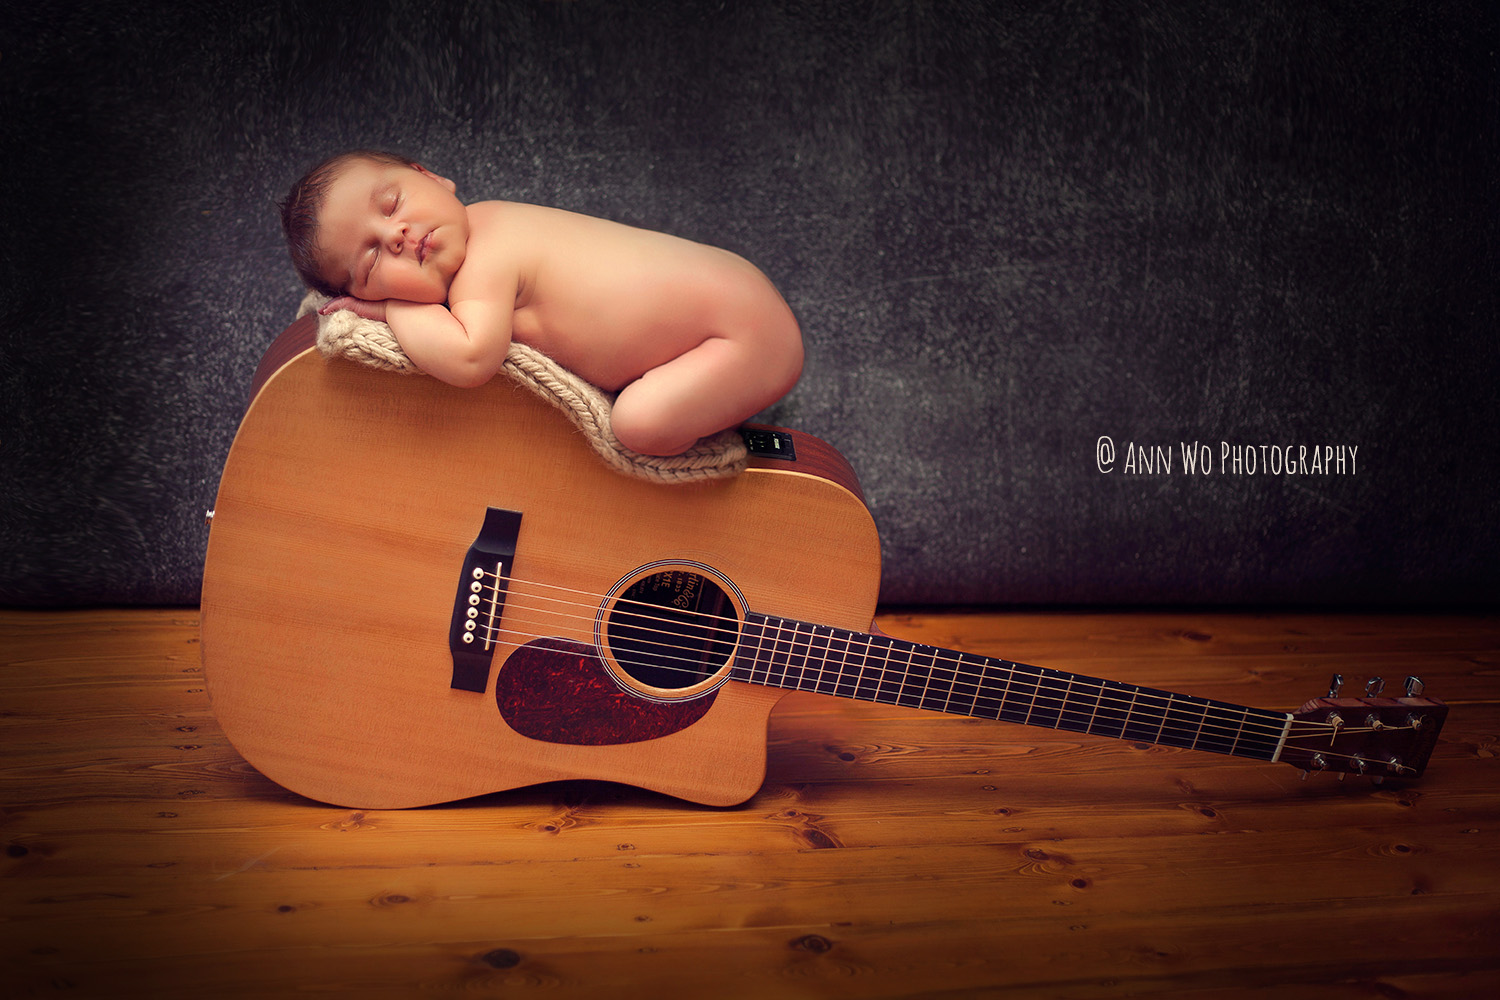 Newborn photography in London by Ann Wo guitar